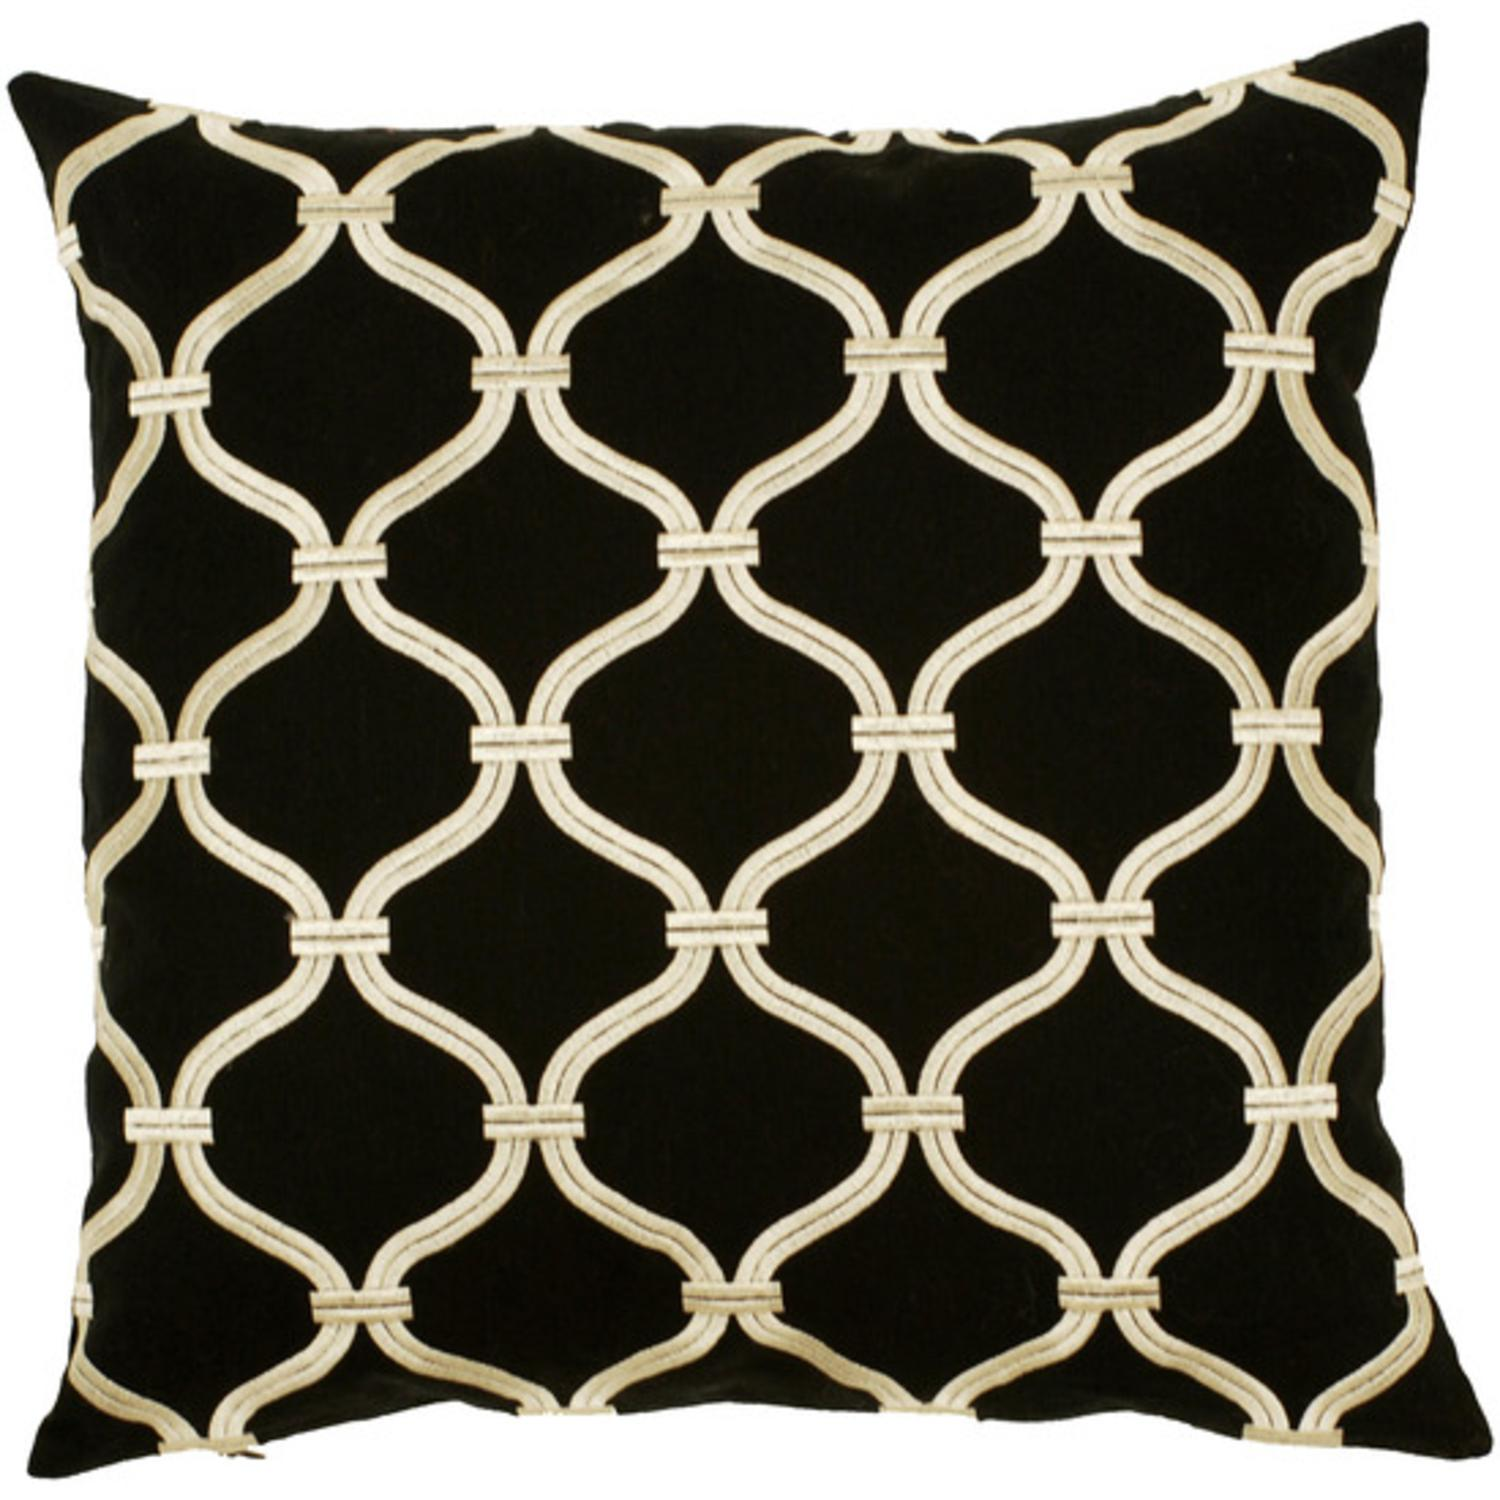 """18"""" Vintage Black and Ivory Oval Chain Link Decorative Throw Pillow"""